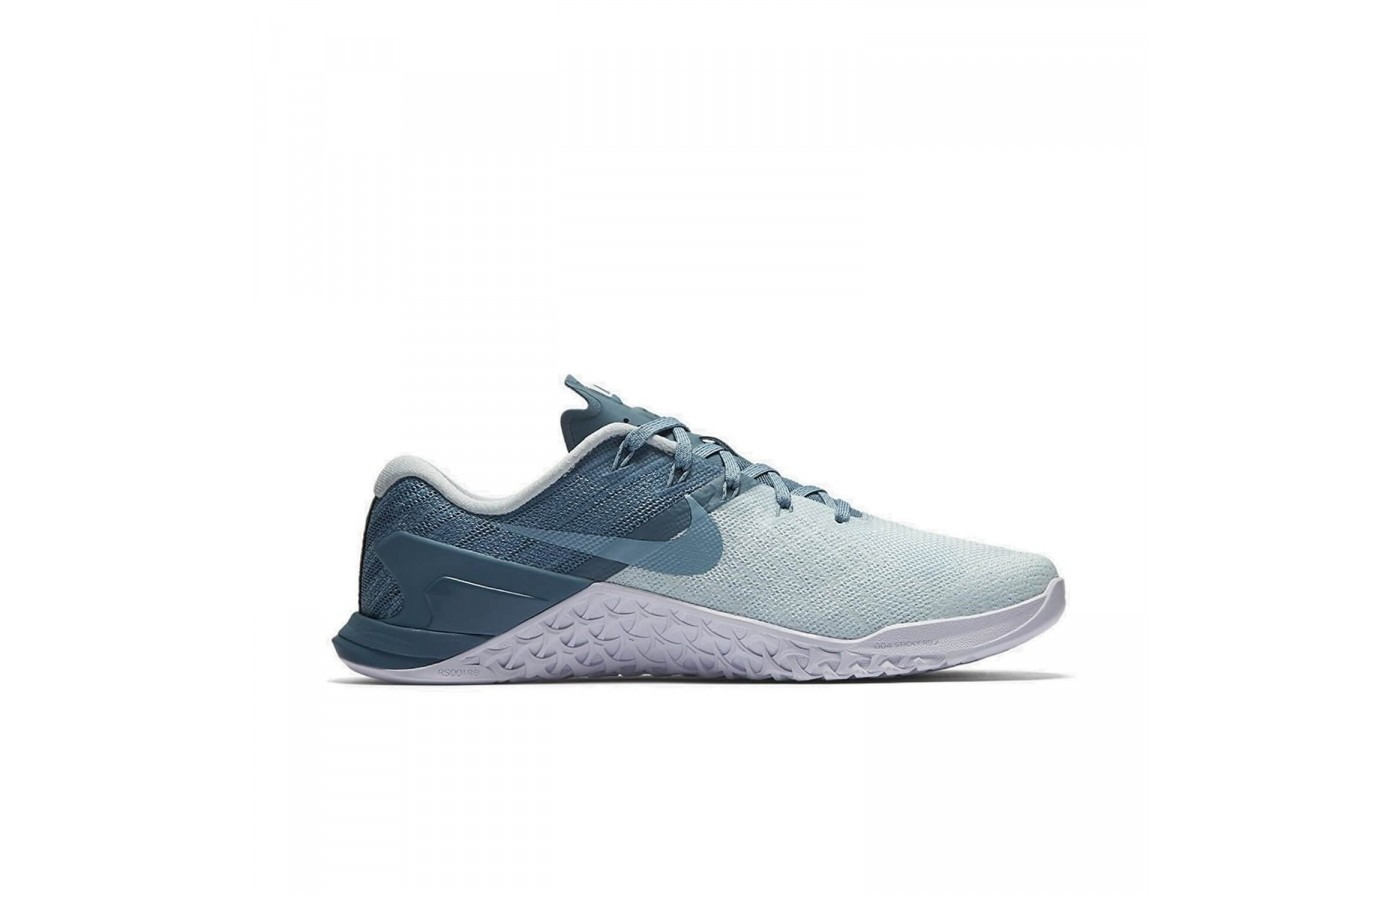 17f593558a3 ... The Nike Metcon 3 features Flywire upper technology ...